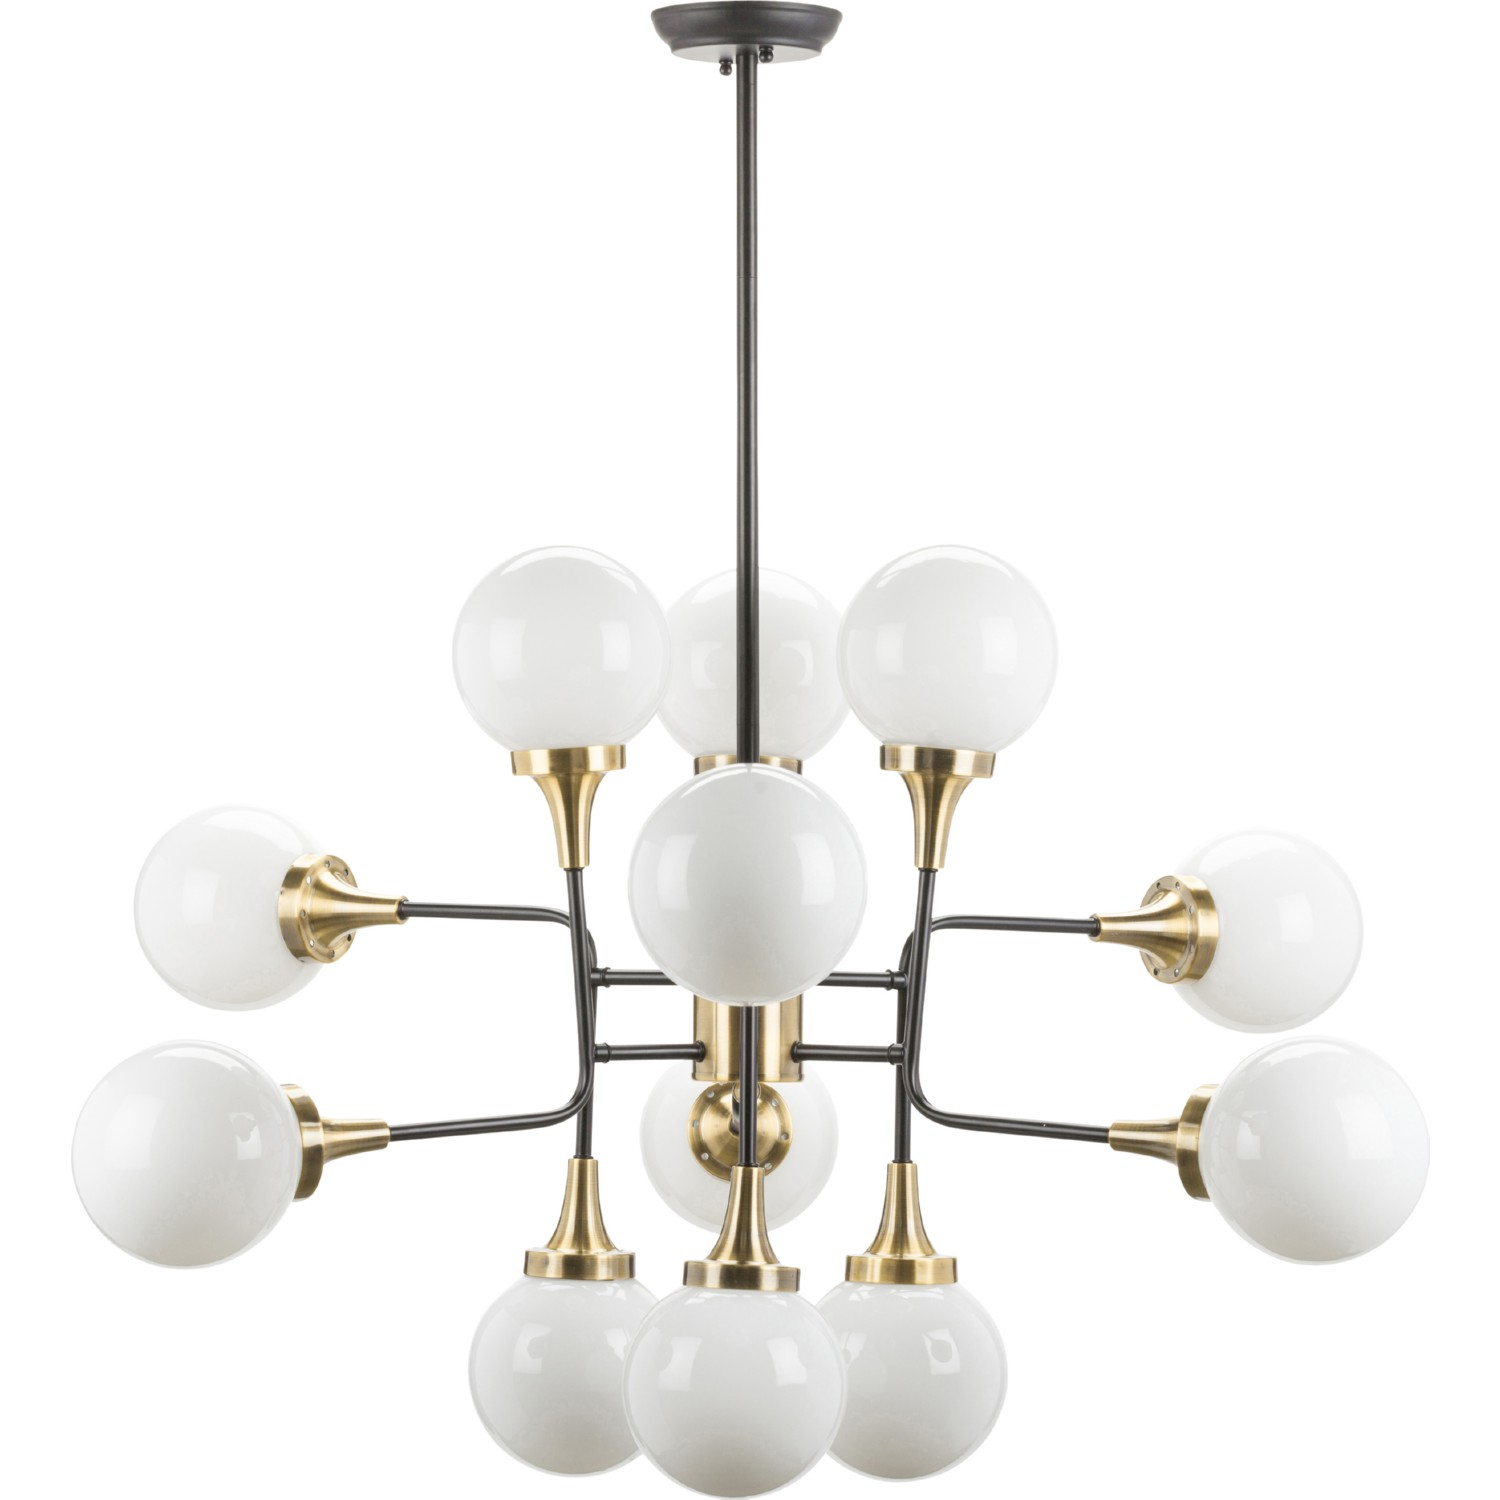 nuevo modern furniture hgra bella pendant lighting in opal  - bella pendant lighting in opal glass  antique brass